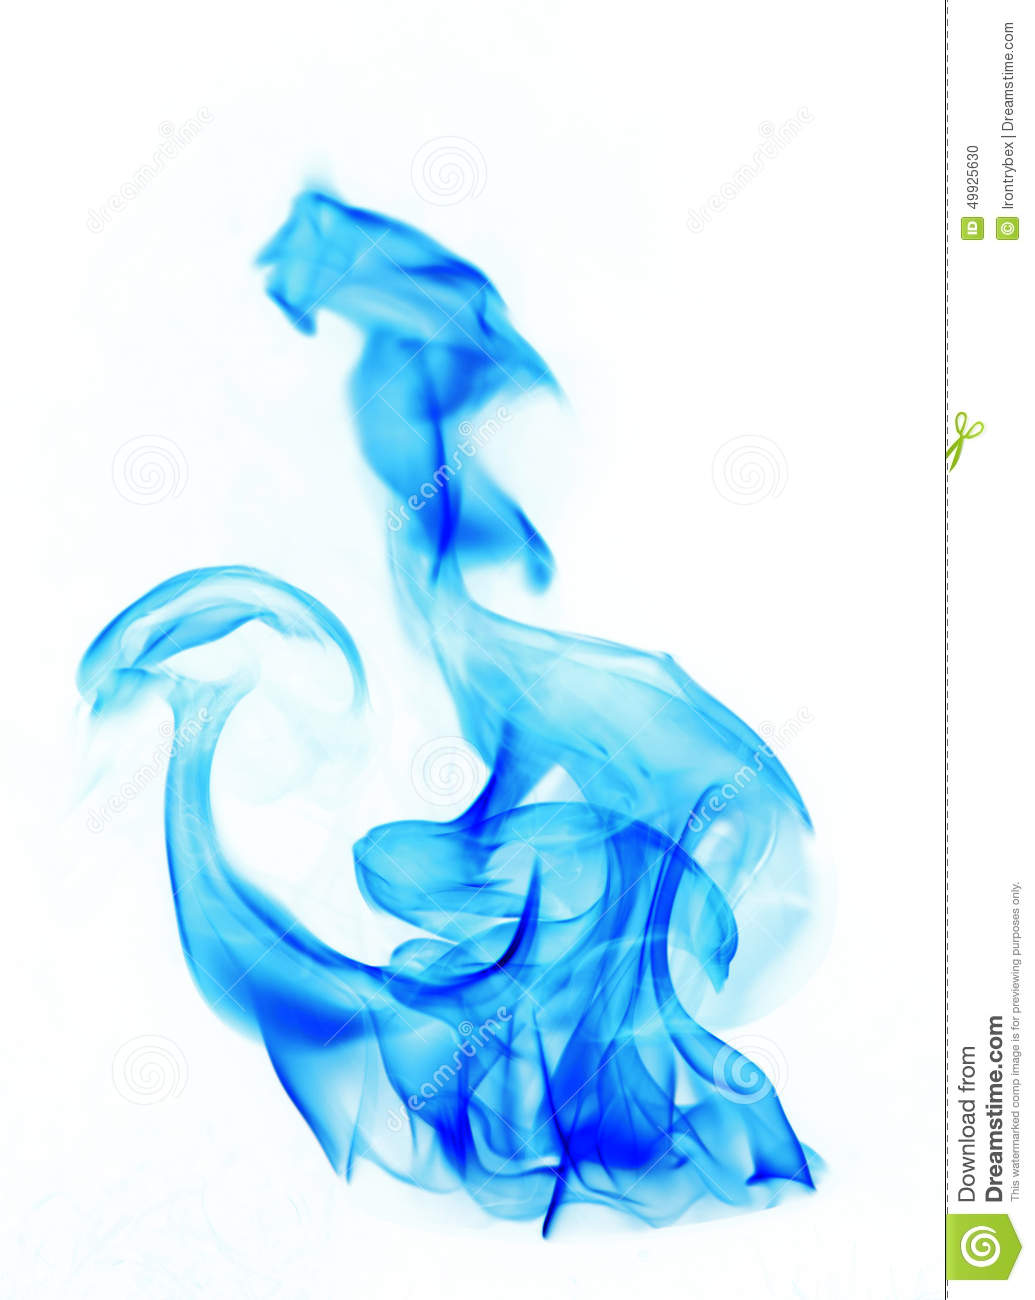 Blue Fire Flames Stock Photo - Image: 49925630